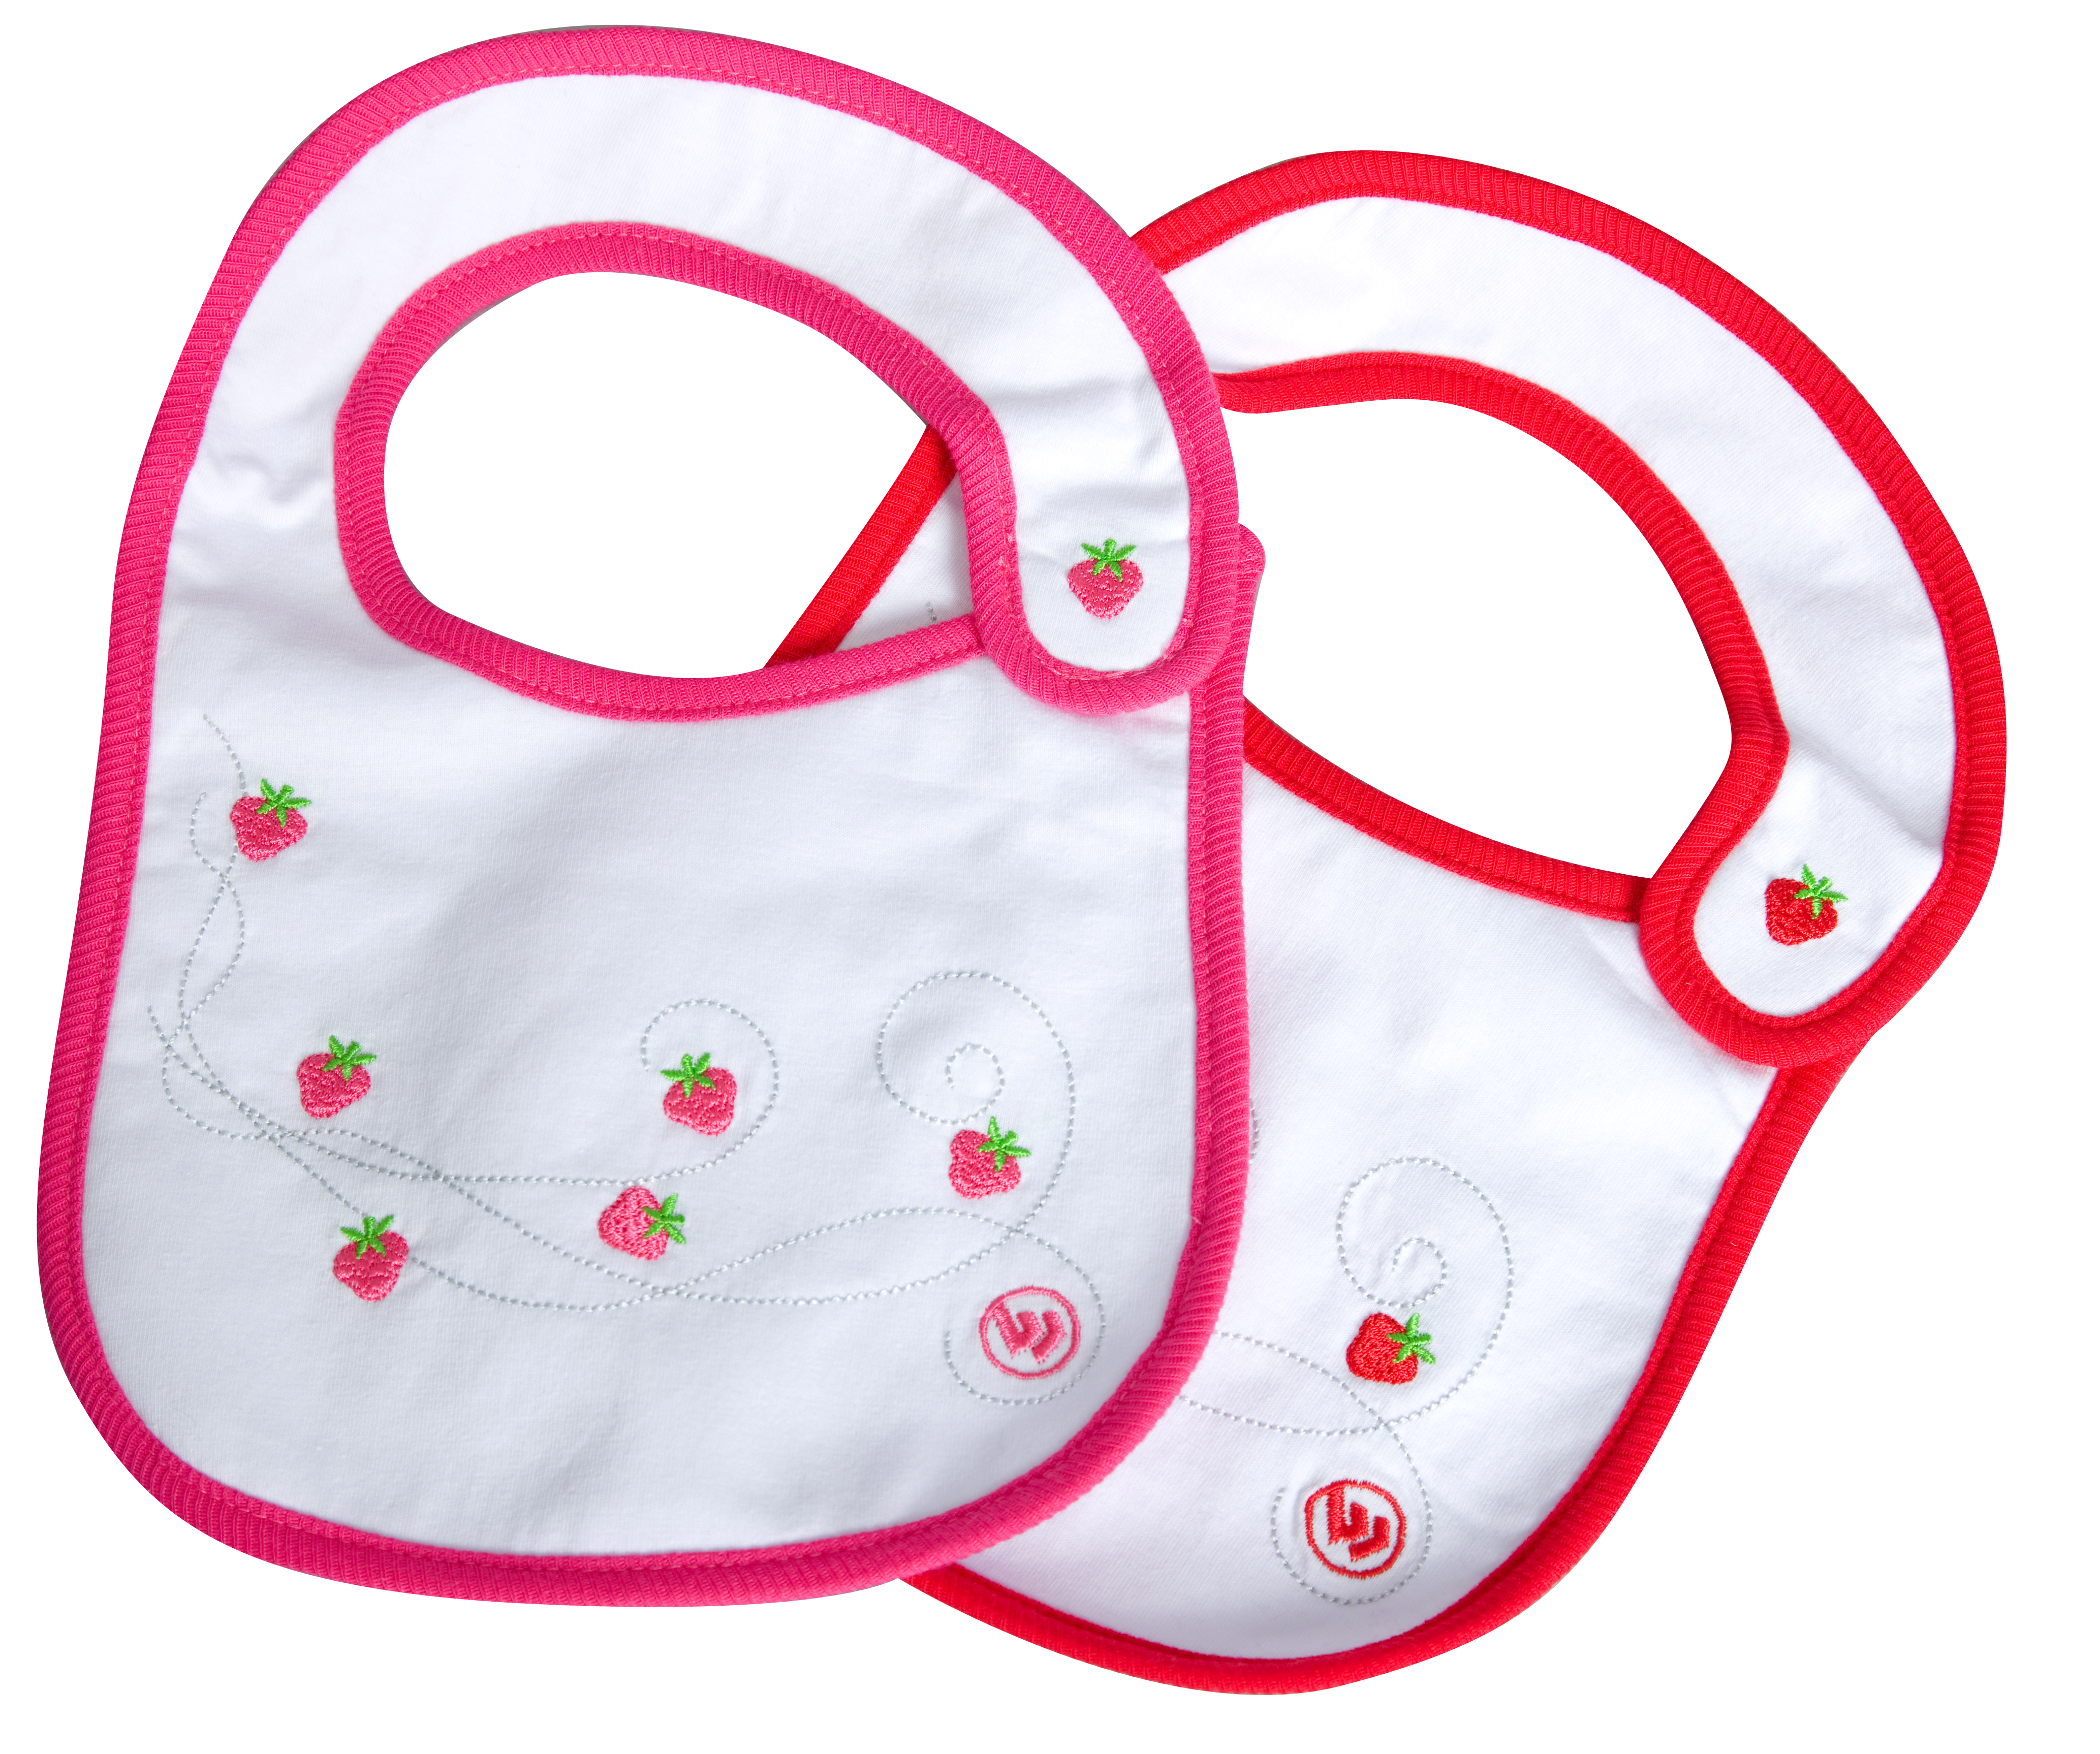 Wimbledon Strawberry Bib 2 Pack - White/Pink and White/Red - Girls